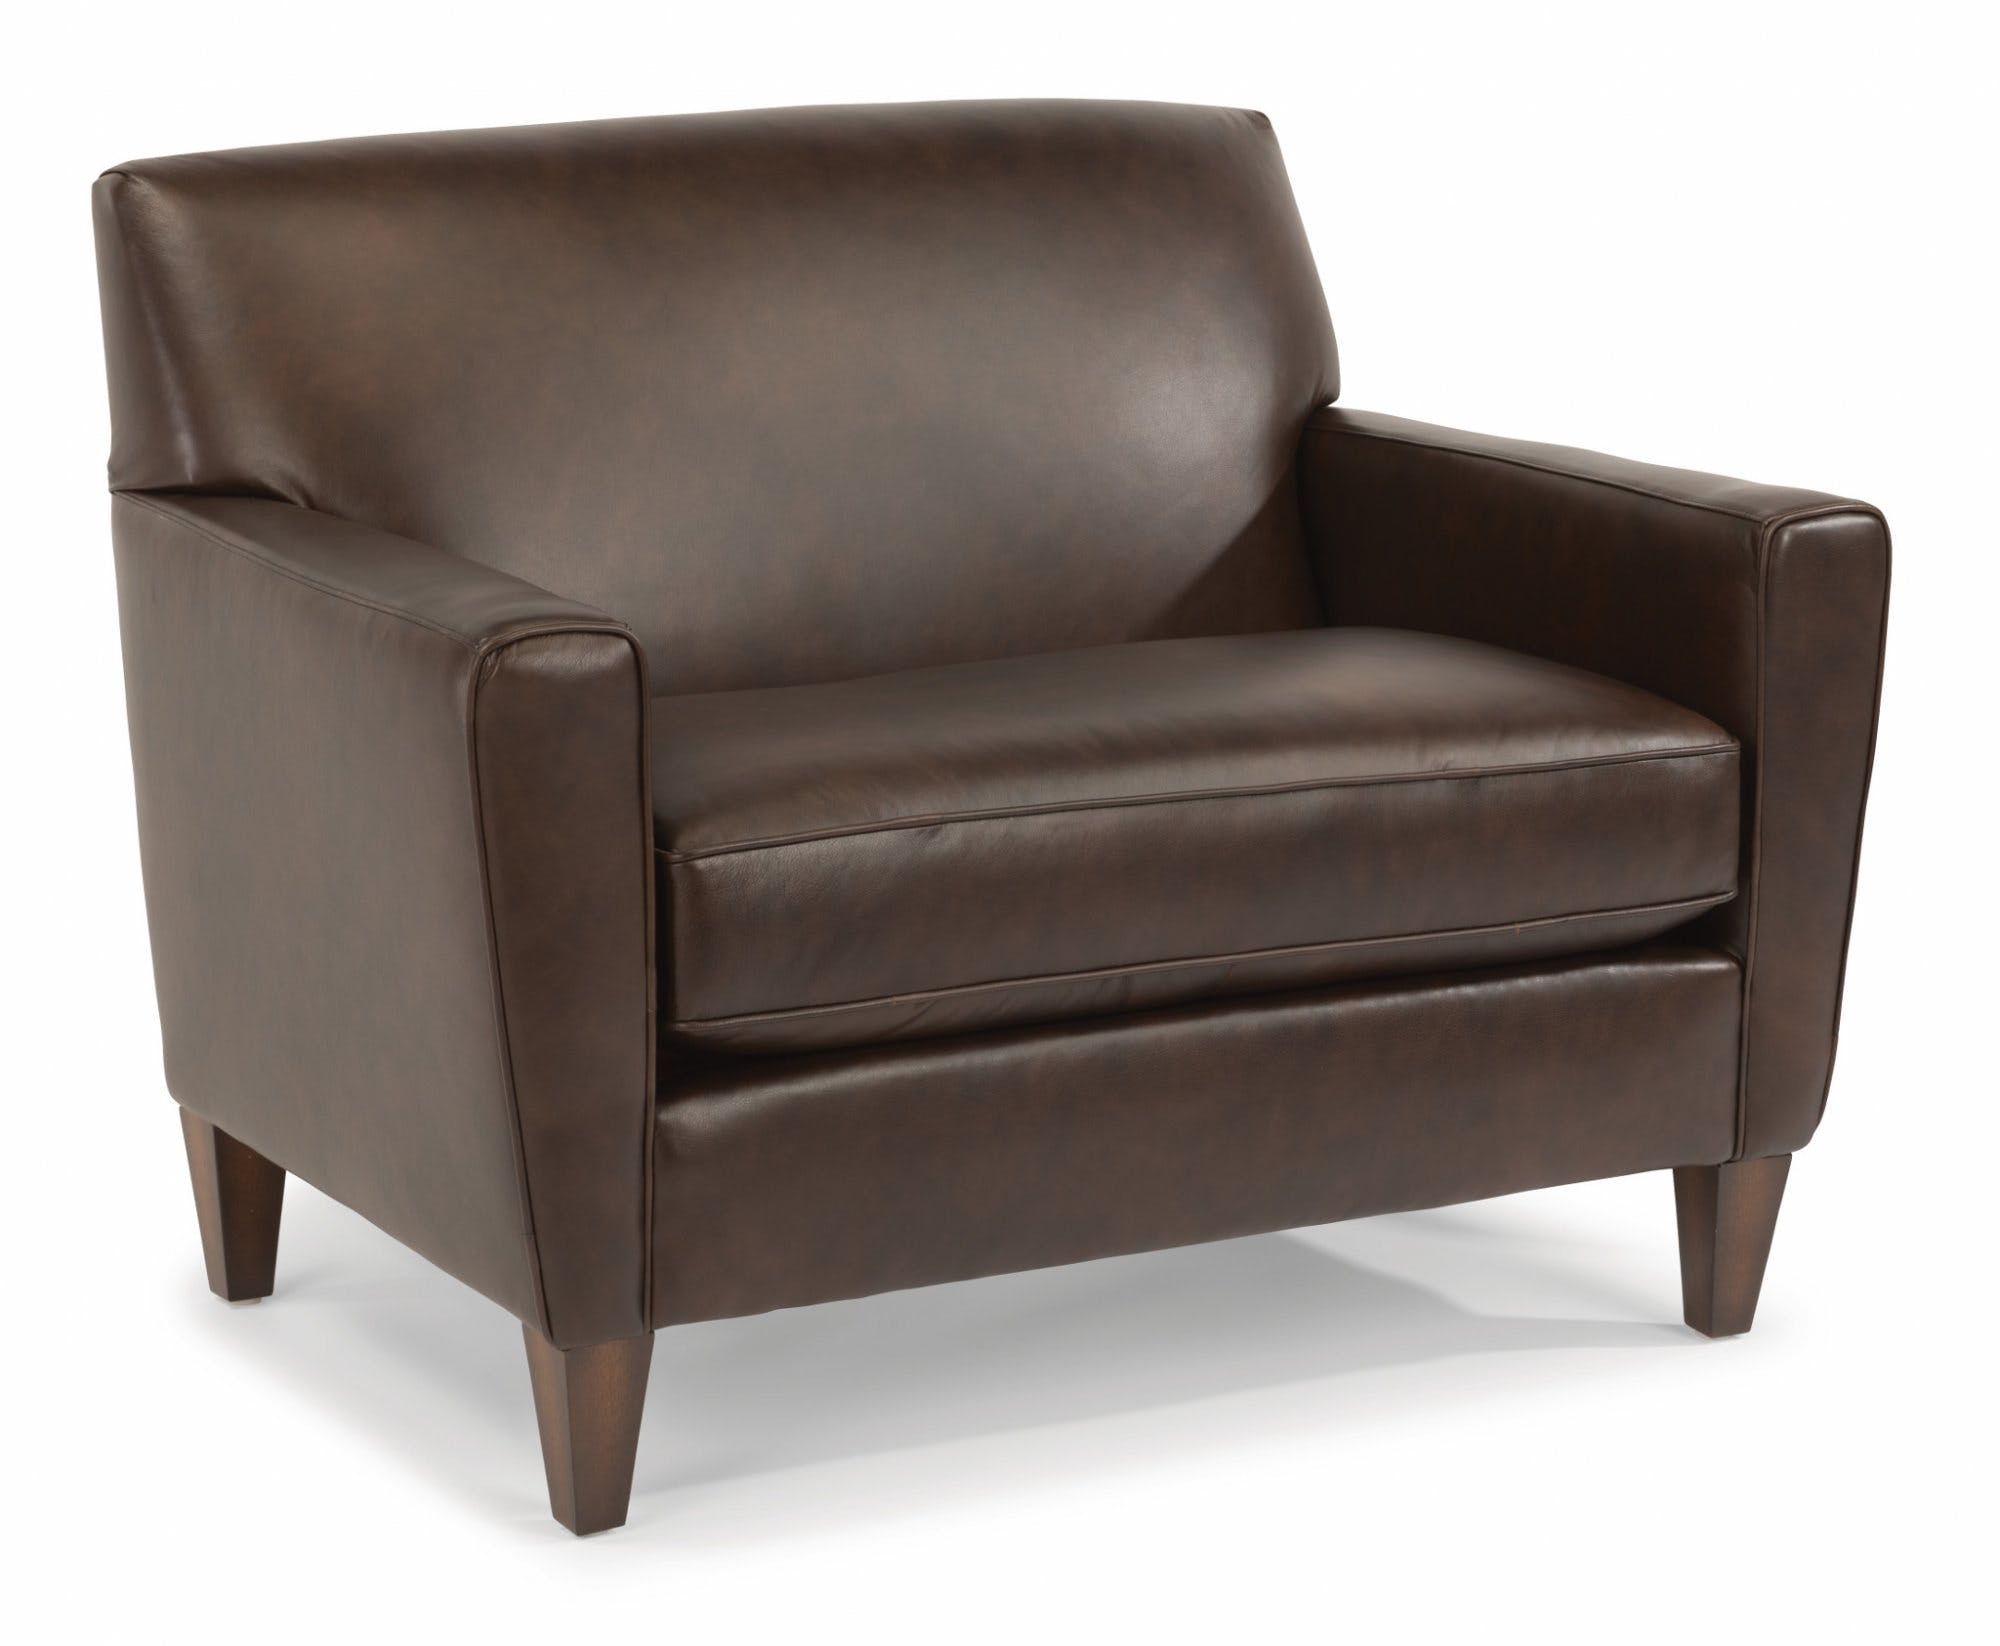 Flexsteel Leather Chair And A Half 3966-101